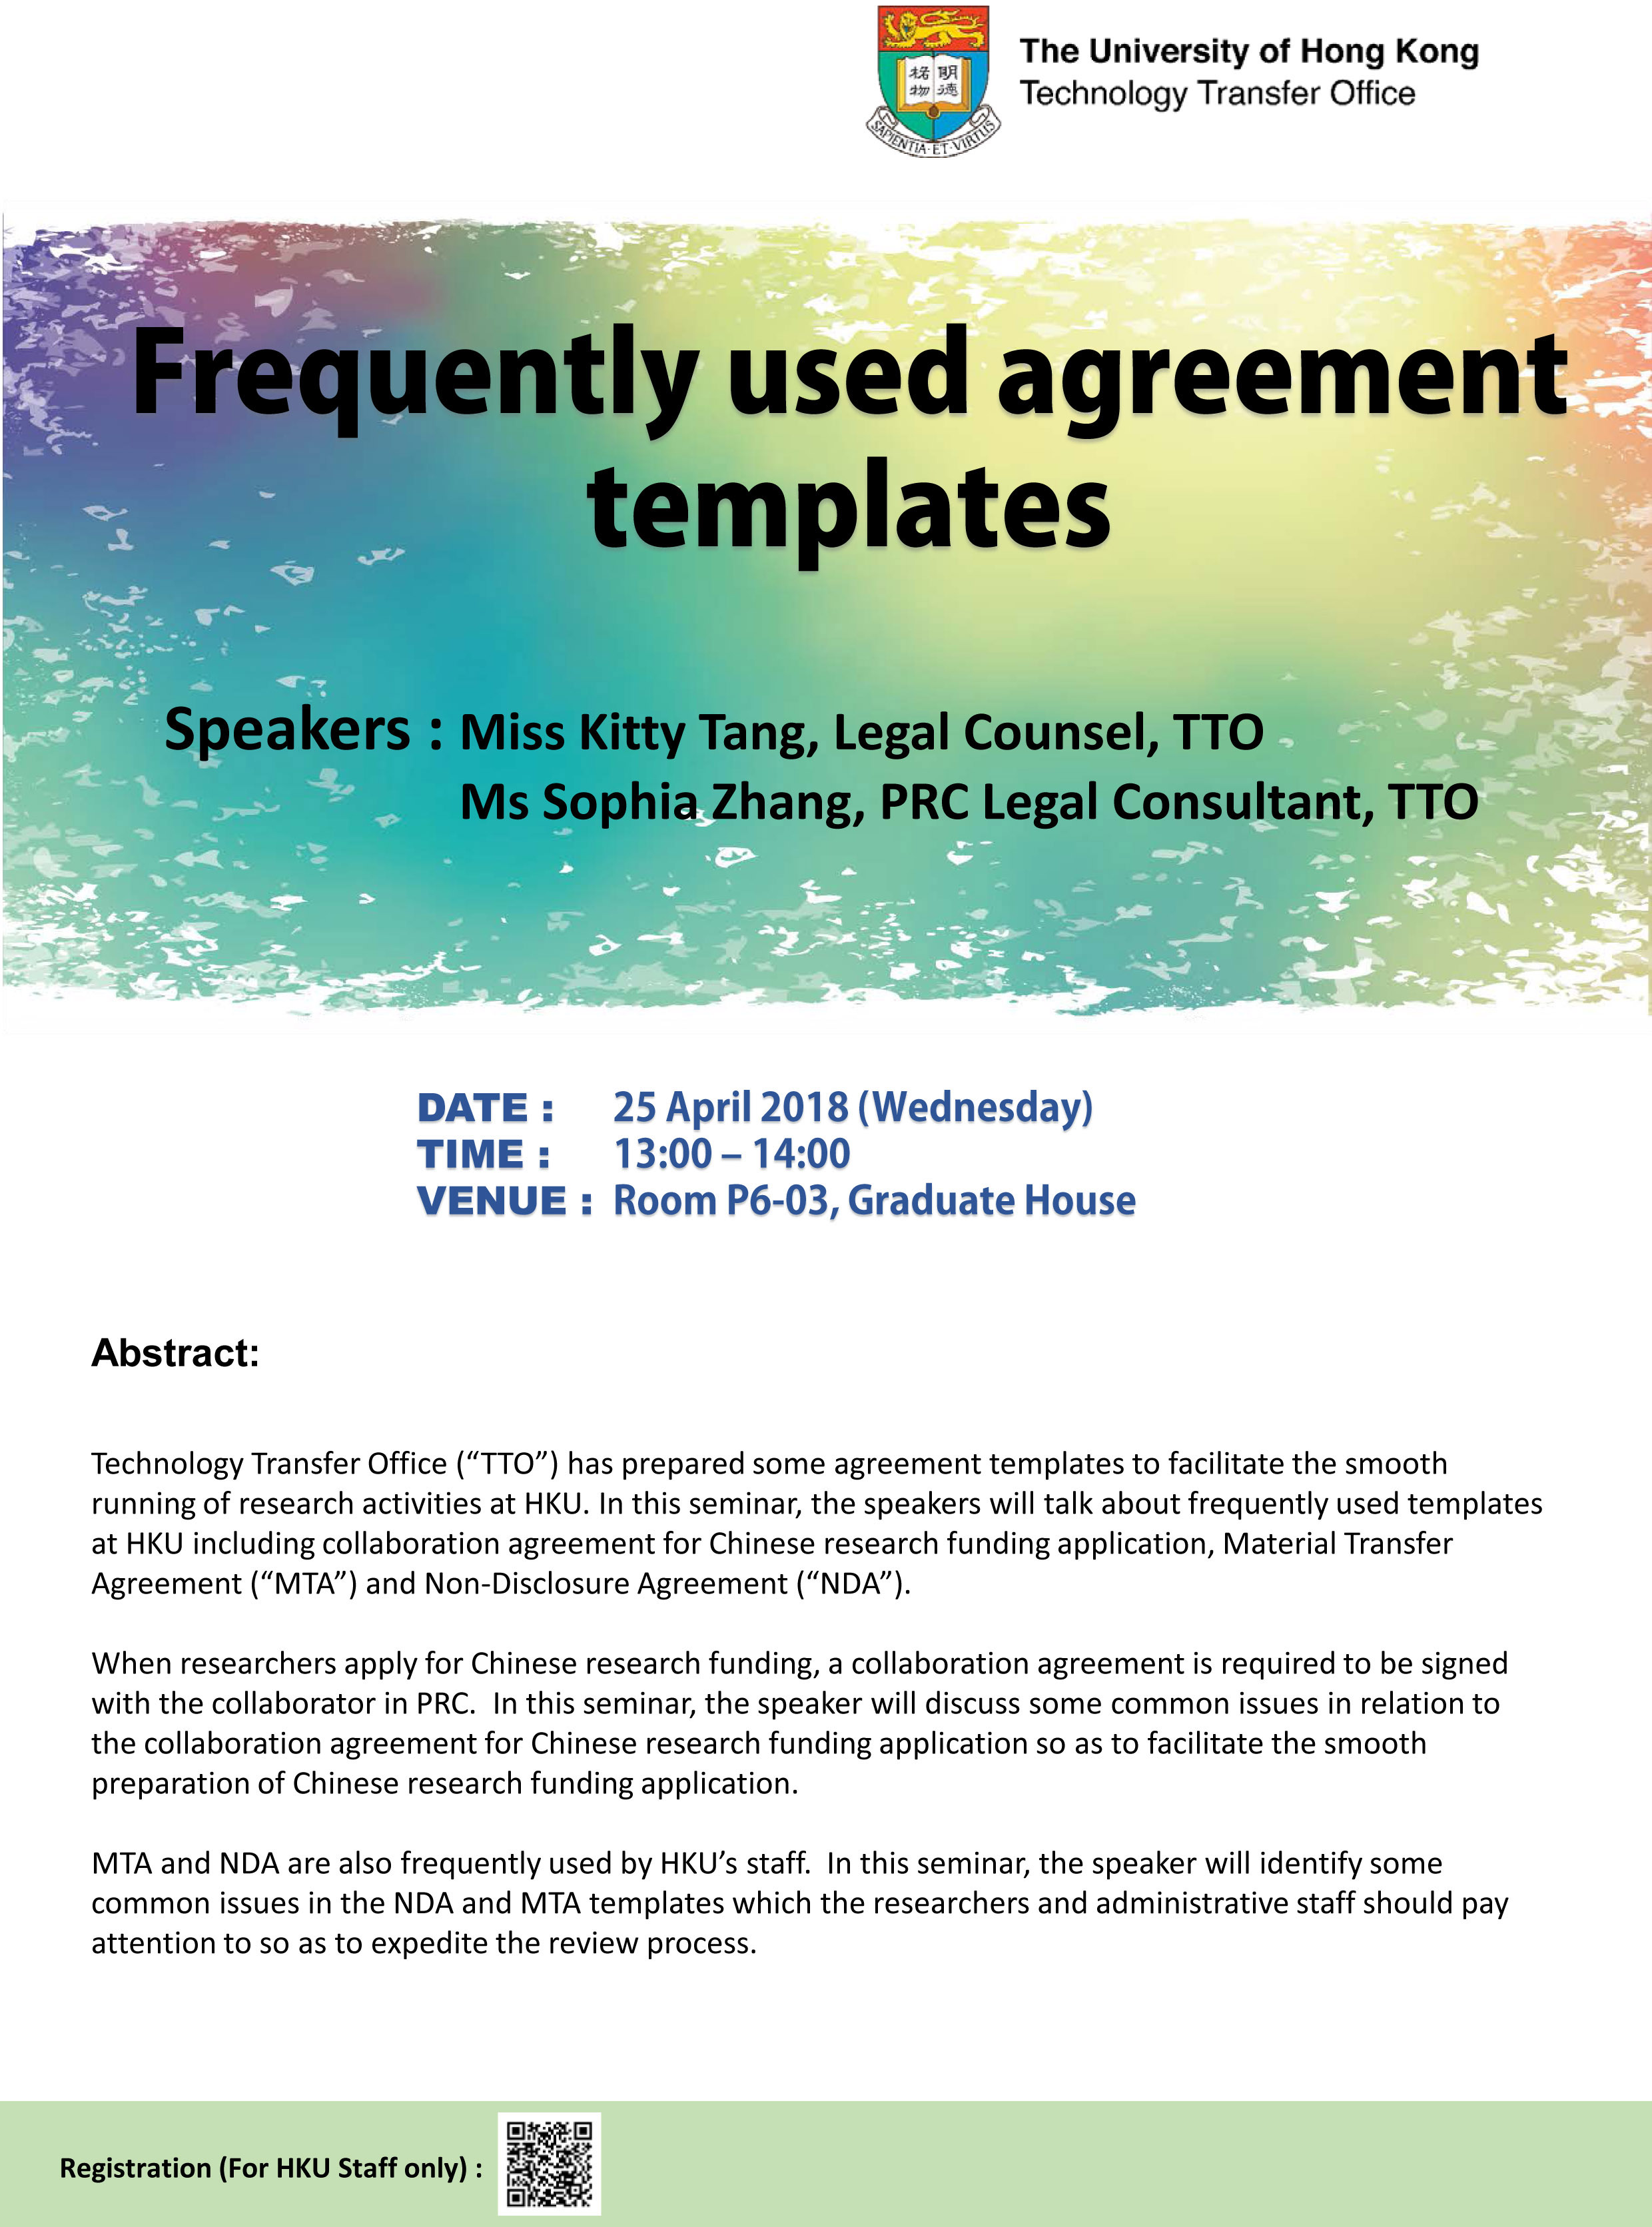 Frequently Used Agreement Templates Events News And